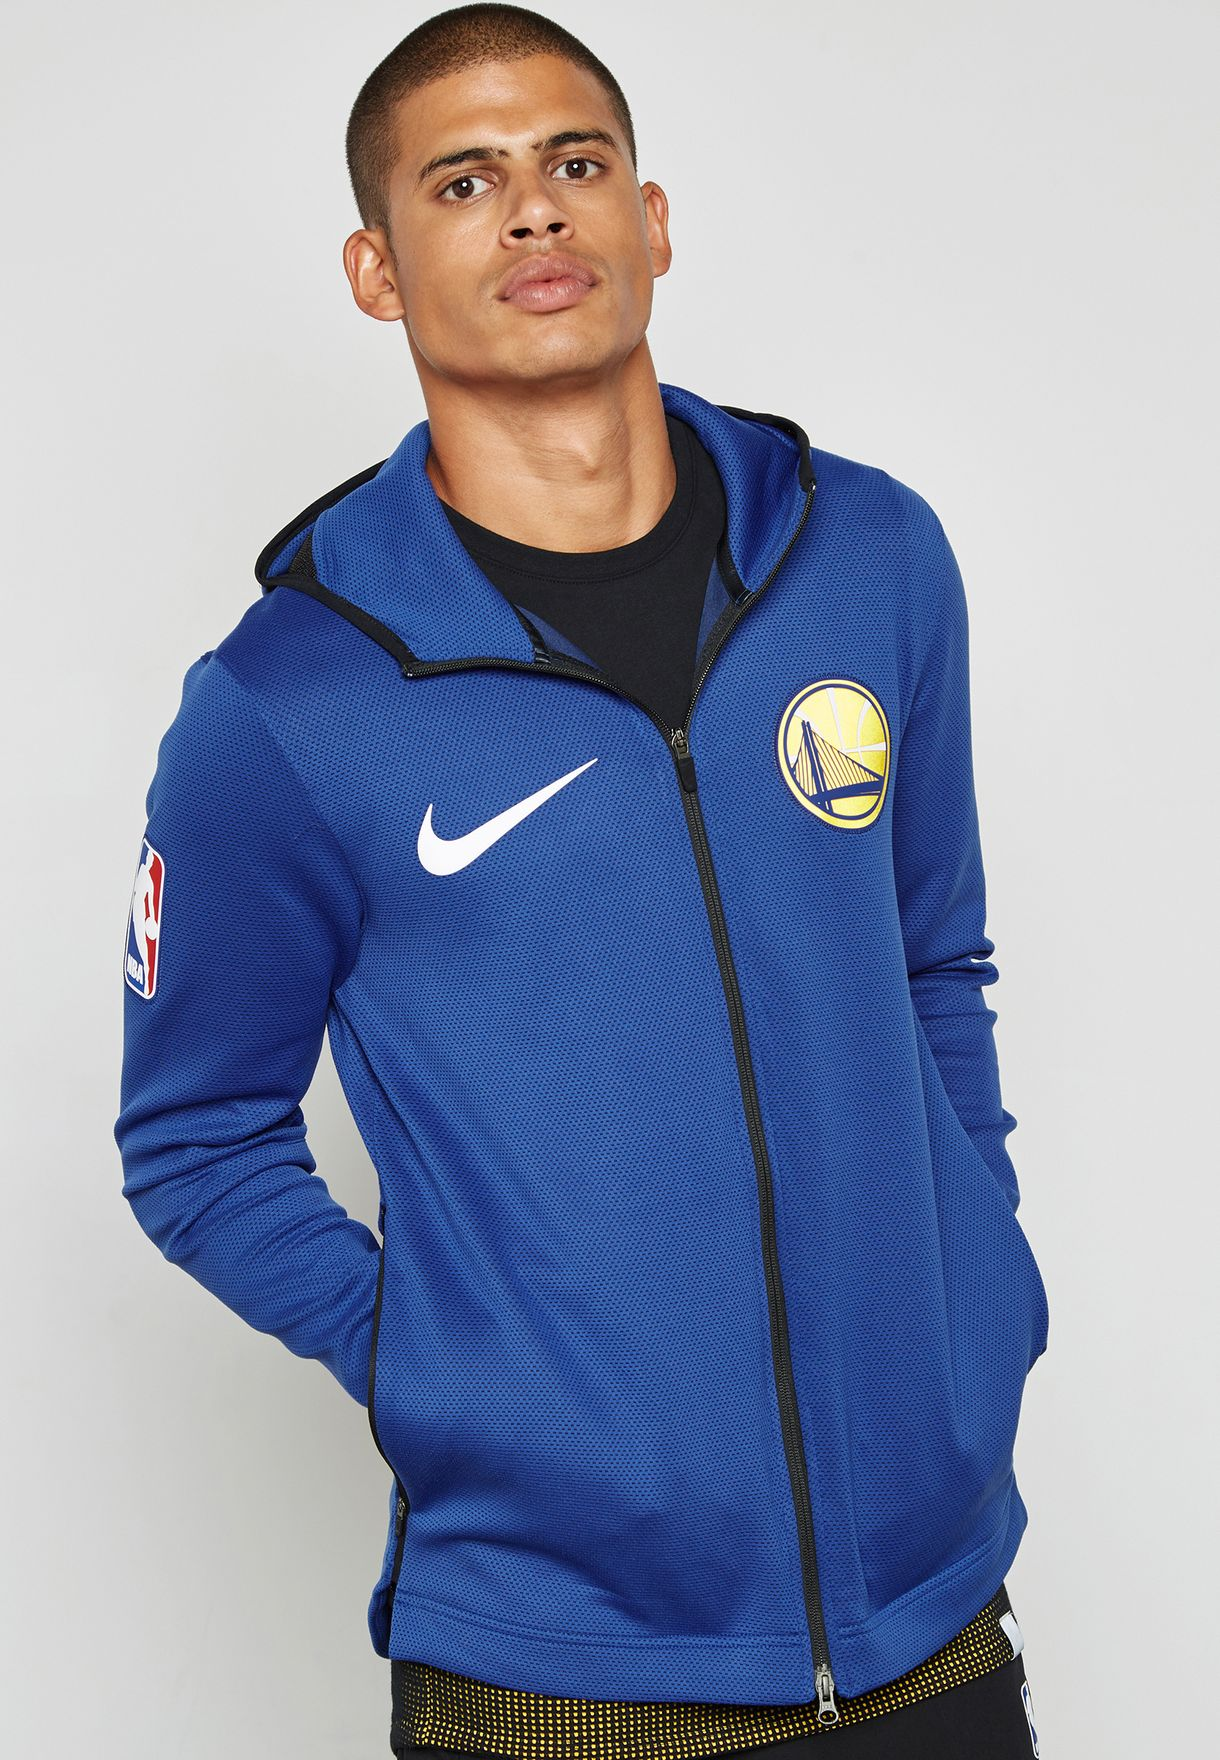 3dabe56c22a Shop Nike blue Golden State Warriors Showtime Hoodie 899840-495 for ...